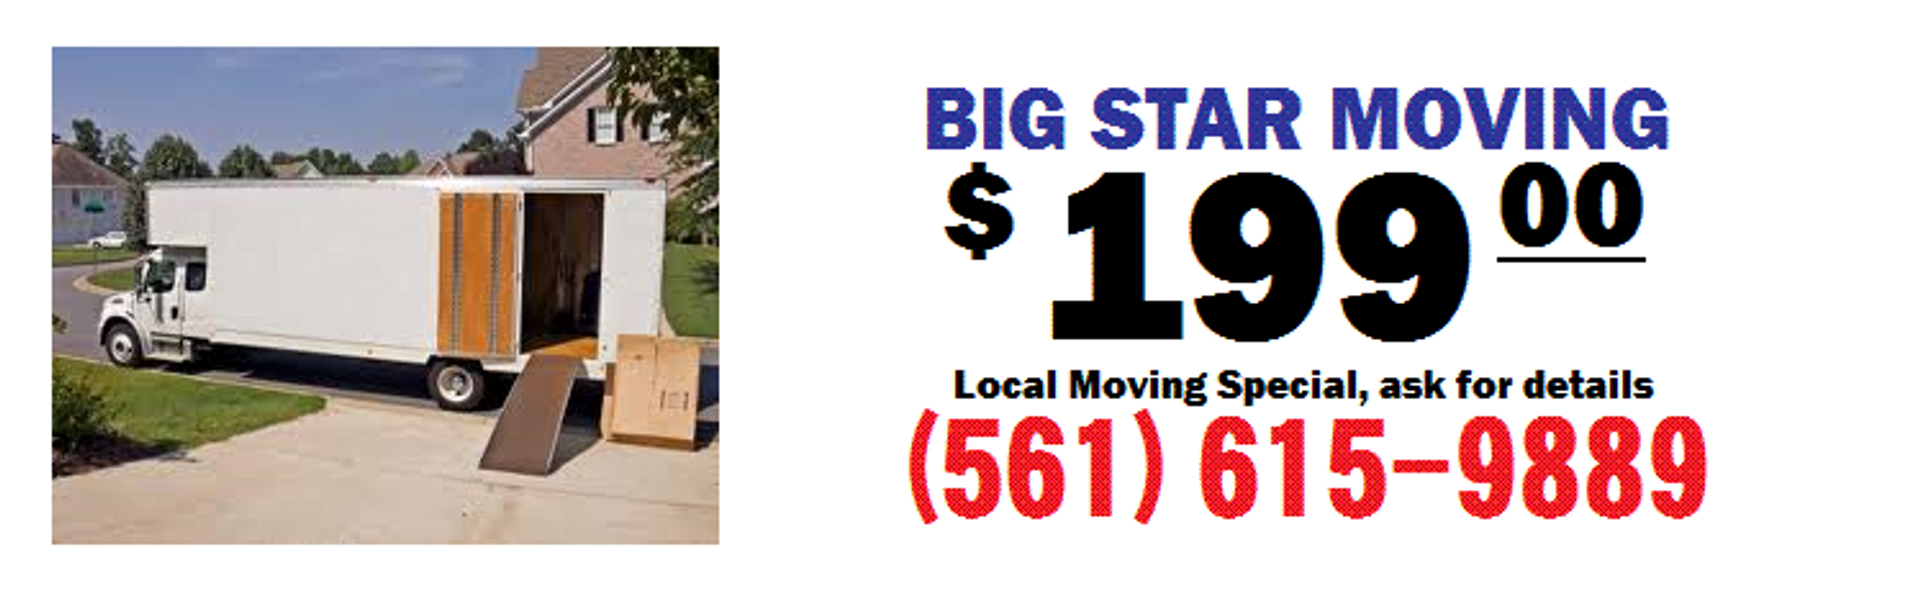 west palm beach moving, west palm beach movers, moving, mover, west palm beach moving companies, moving companies west palm beach, movers west palm beach fl